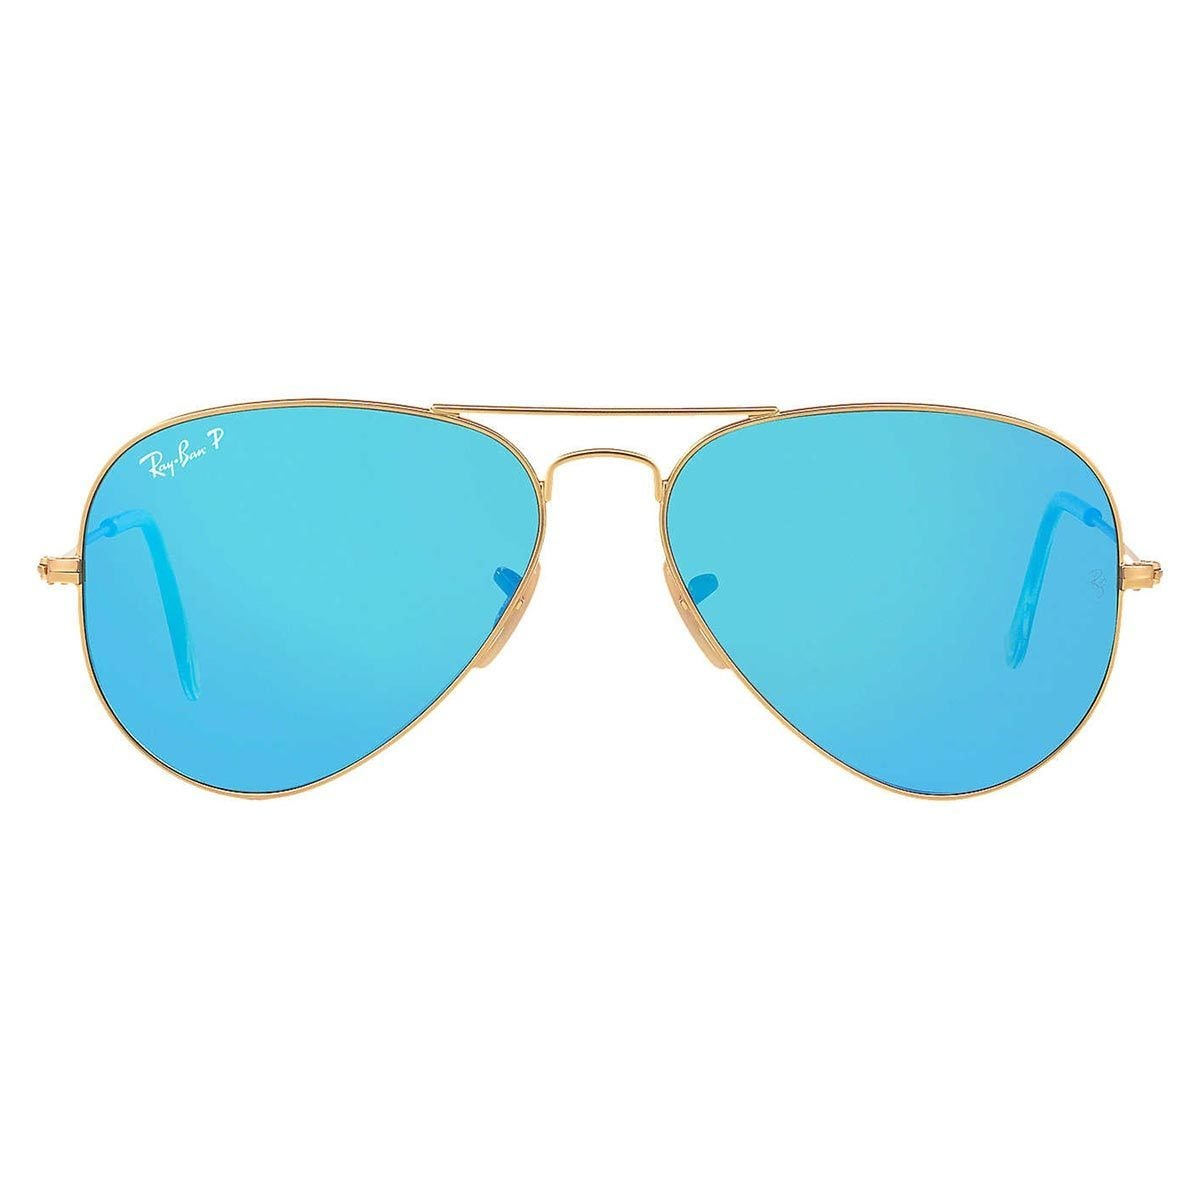 53f5845b89 Shop Ray-Ban Aviator RB3025 Unisex Gold Frame Blue Flash Polarized Lens  Sunglasses - Free Shipping Today - Overstock - 9394181